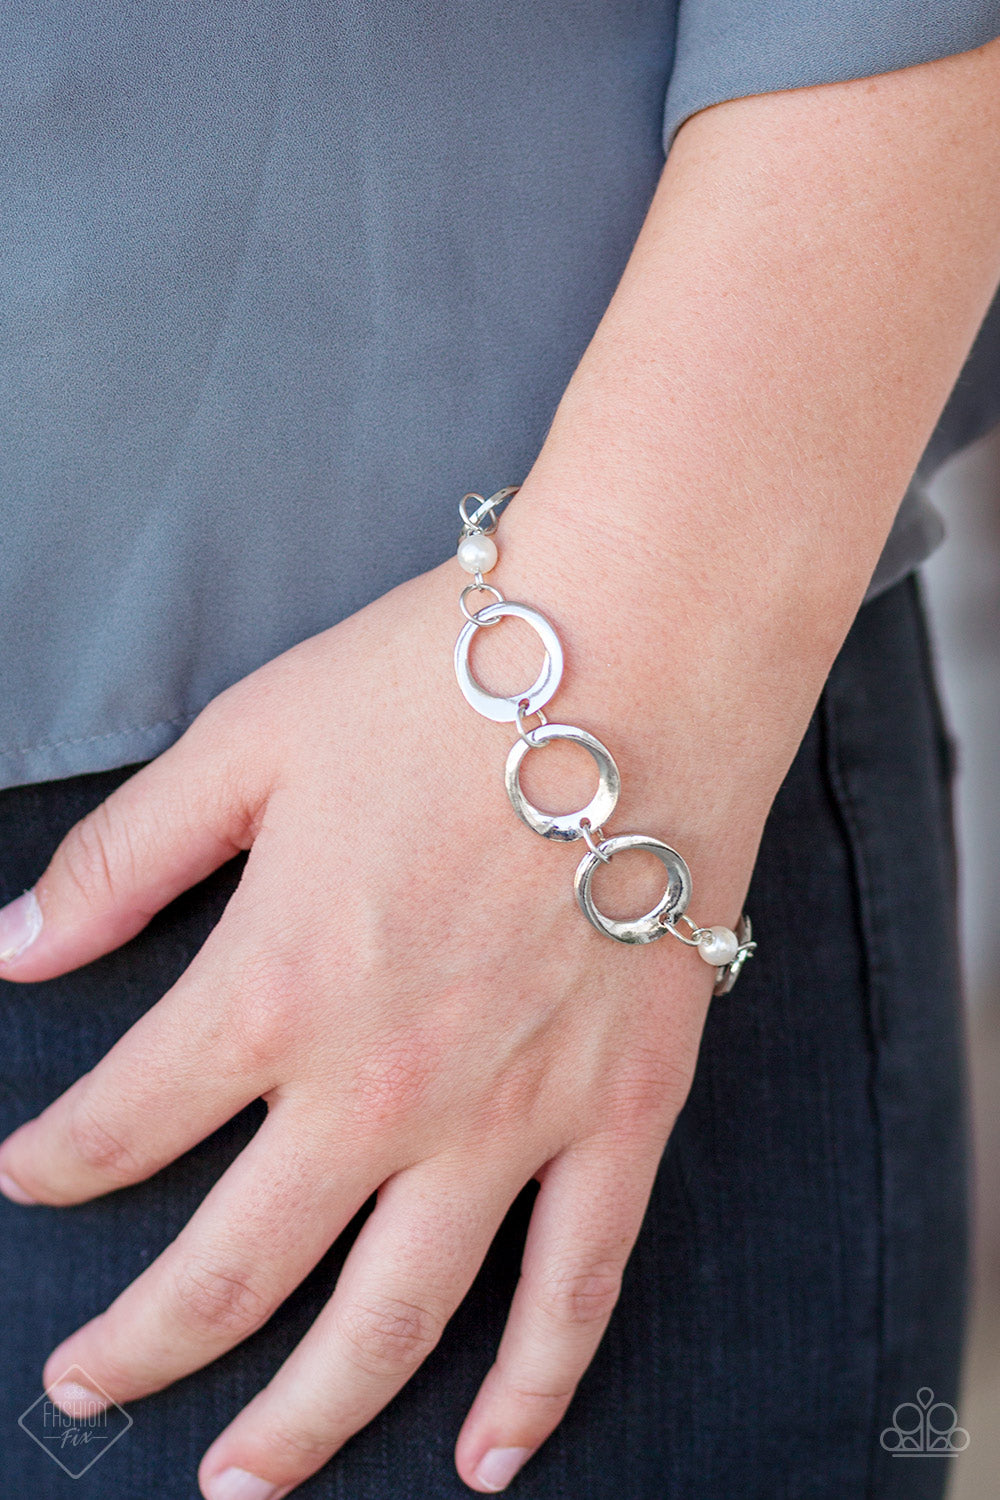 Asymmetrical silver hoops connect with pearly white beads across the wrist for a refined look. Features an adjustable clasp closure.  Sold as one individual bracelet.  Always nickel and lead free.